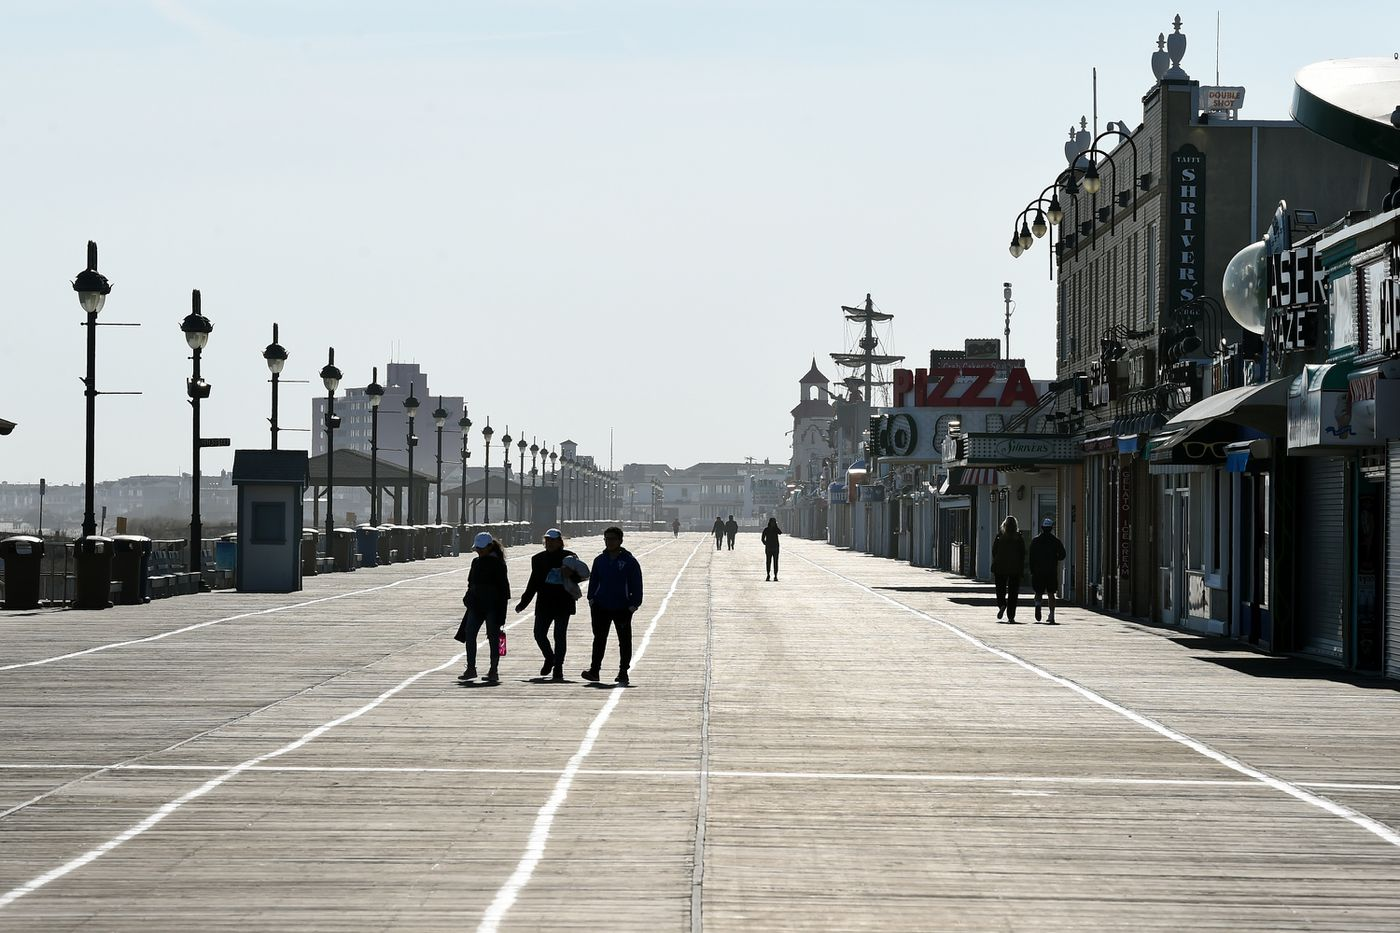 Pedestrians on the Boardwalk in Ocean City on Thursday, even as the city closed its beaches and boardwalk to keep people from spreading the coronavirus.